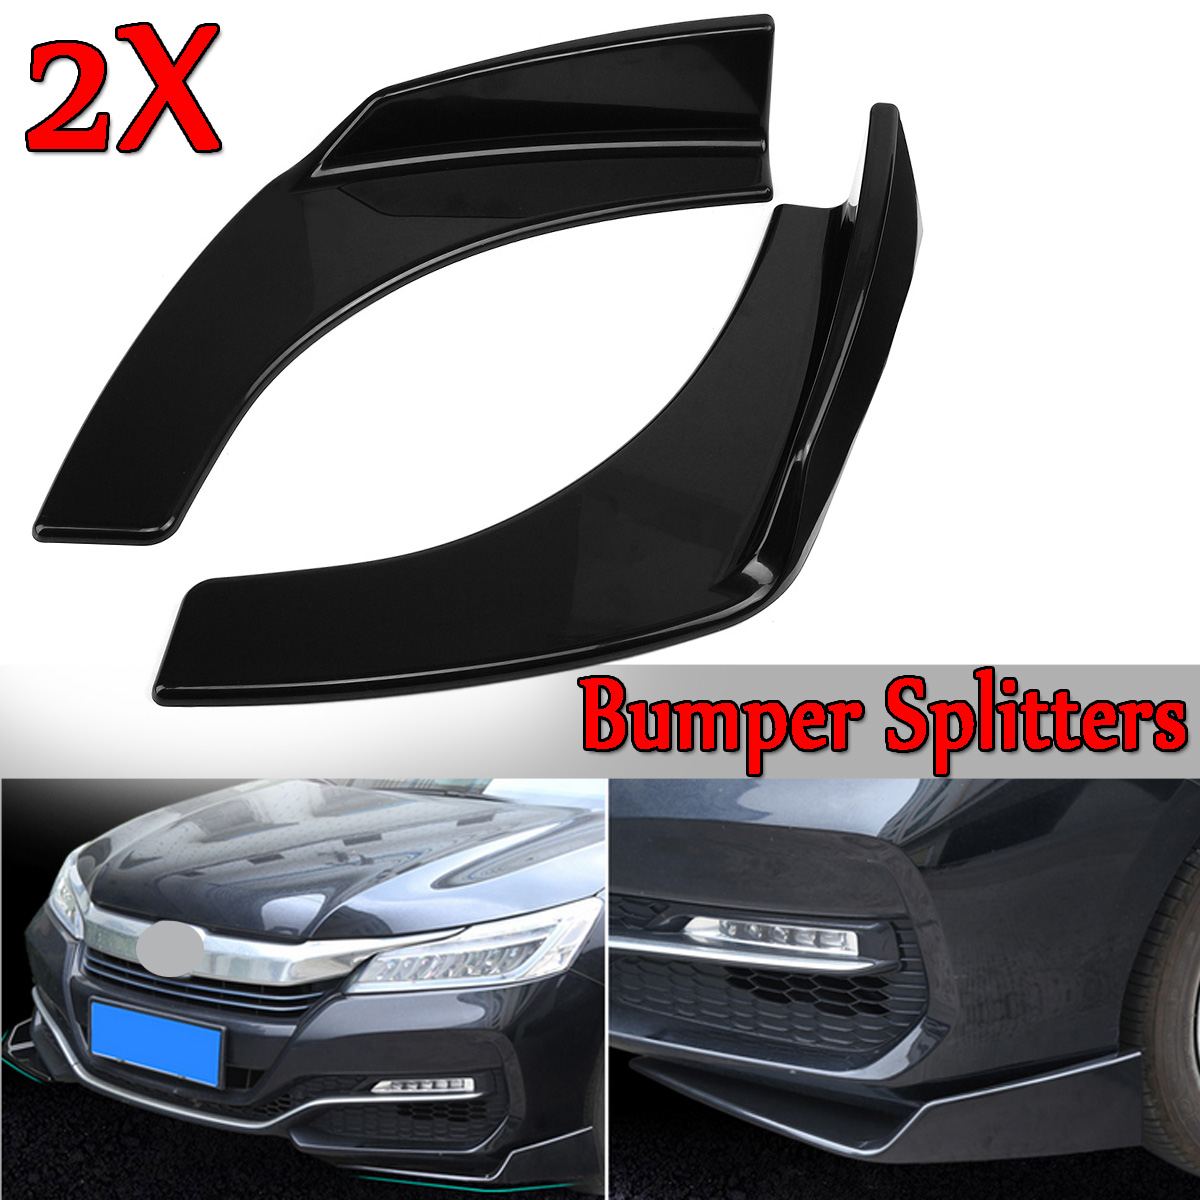 2Pcs New Universal Black Car Front Deflector Spoiler Splitter Diffuser Bumper Canard Lip ABS Plastic Decorative Protection2Pcs New Universal Black Car Front Deflector Spoiler Splitter Diffuser Bumper Canard Lip ABS Plastic Decorative Protection